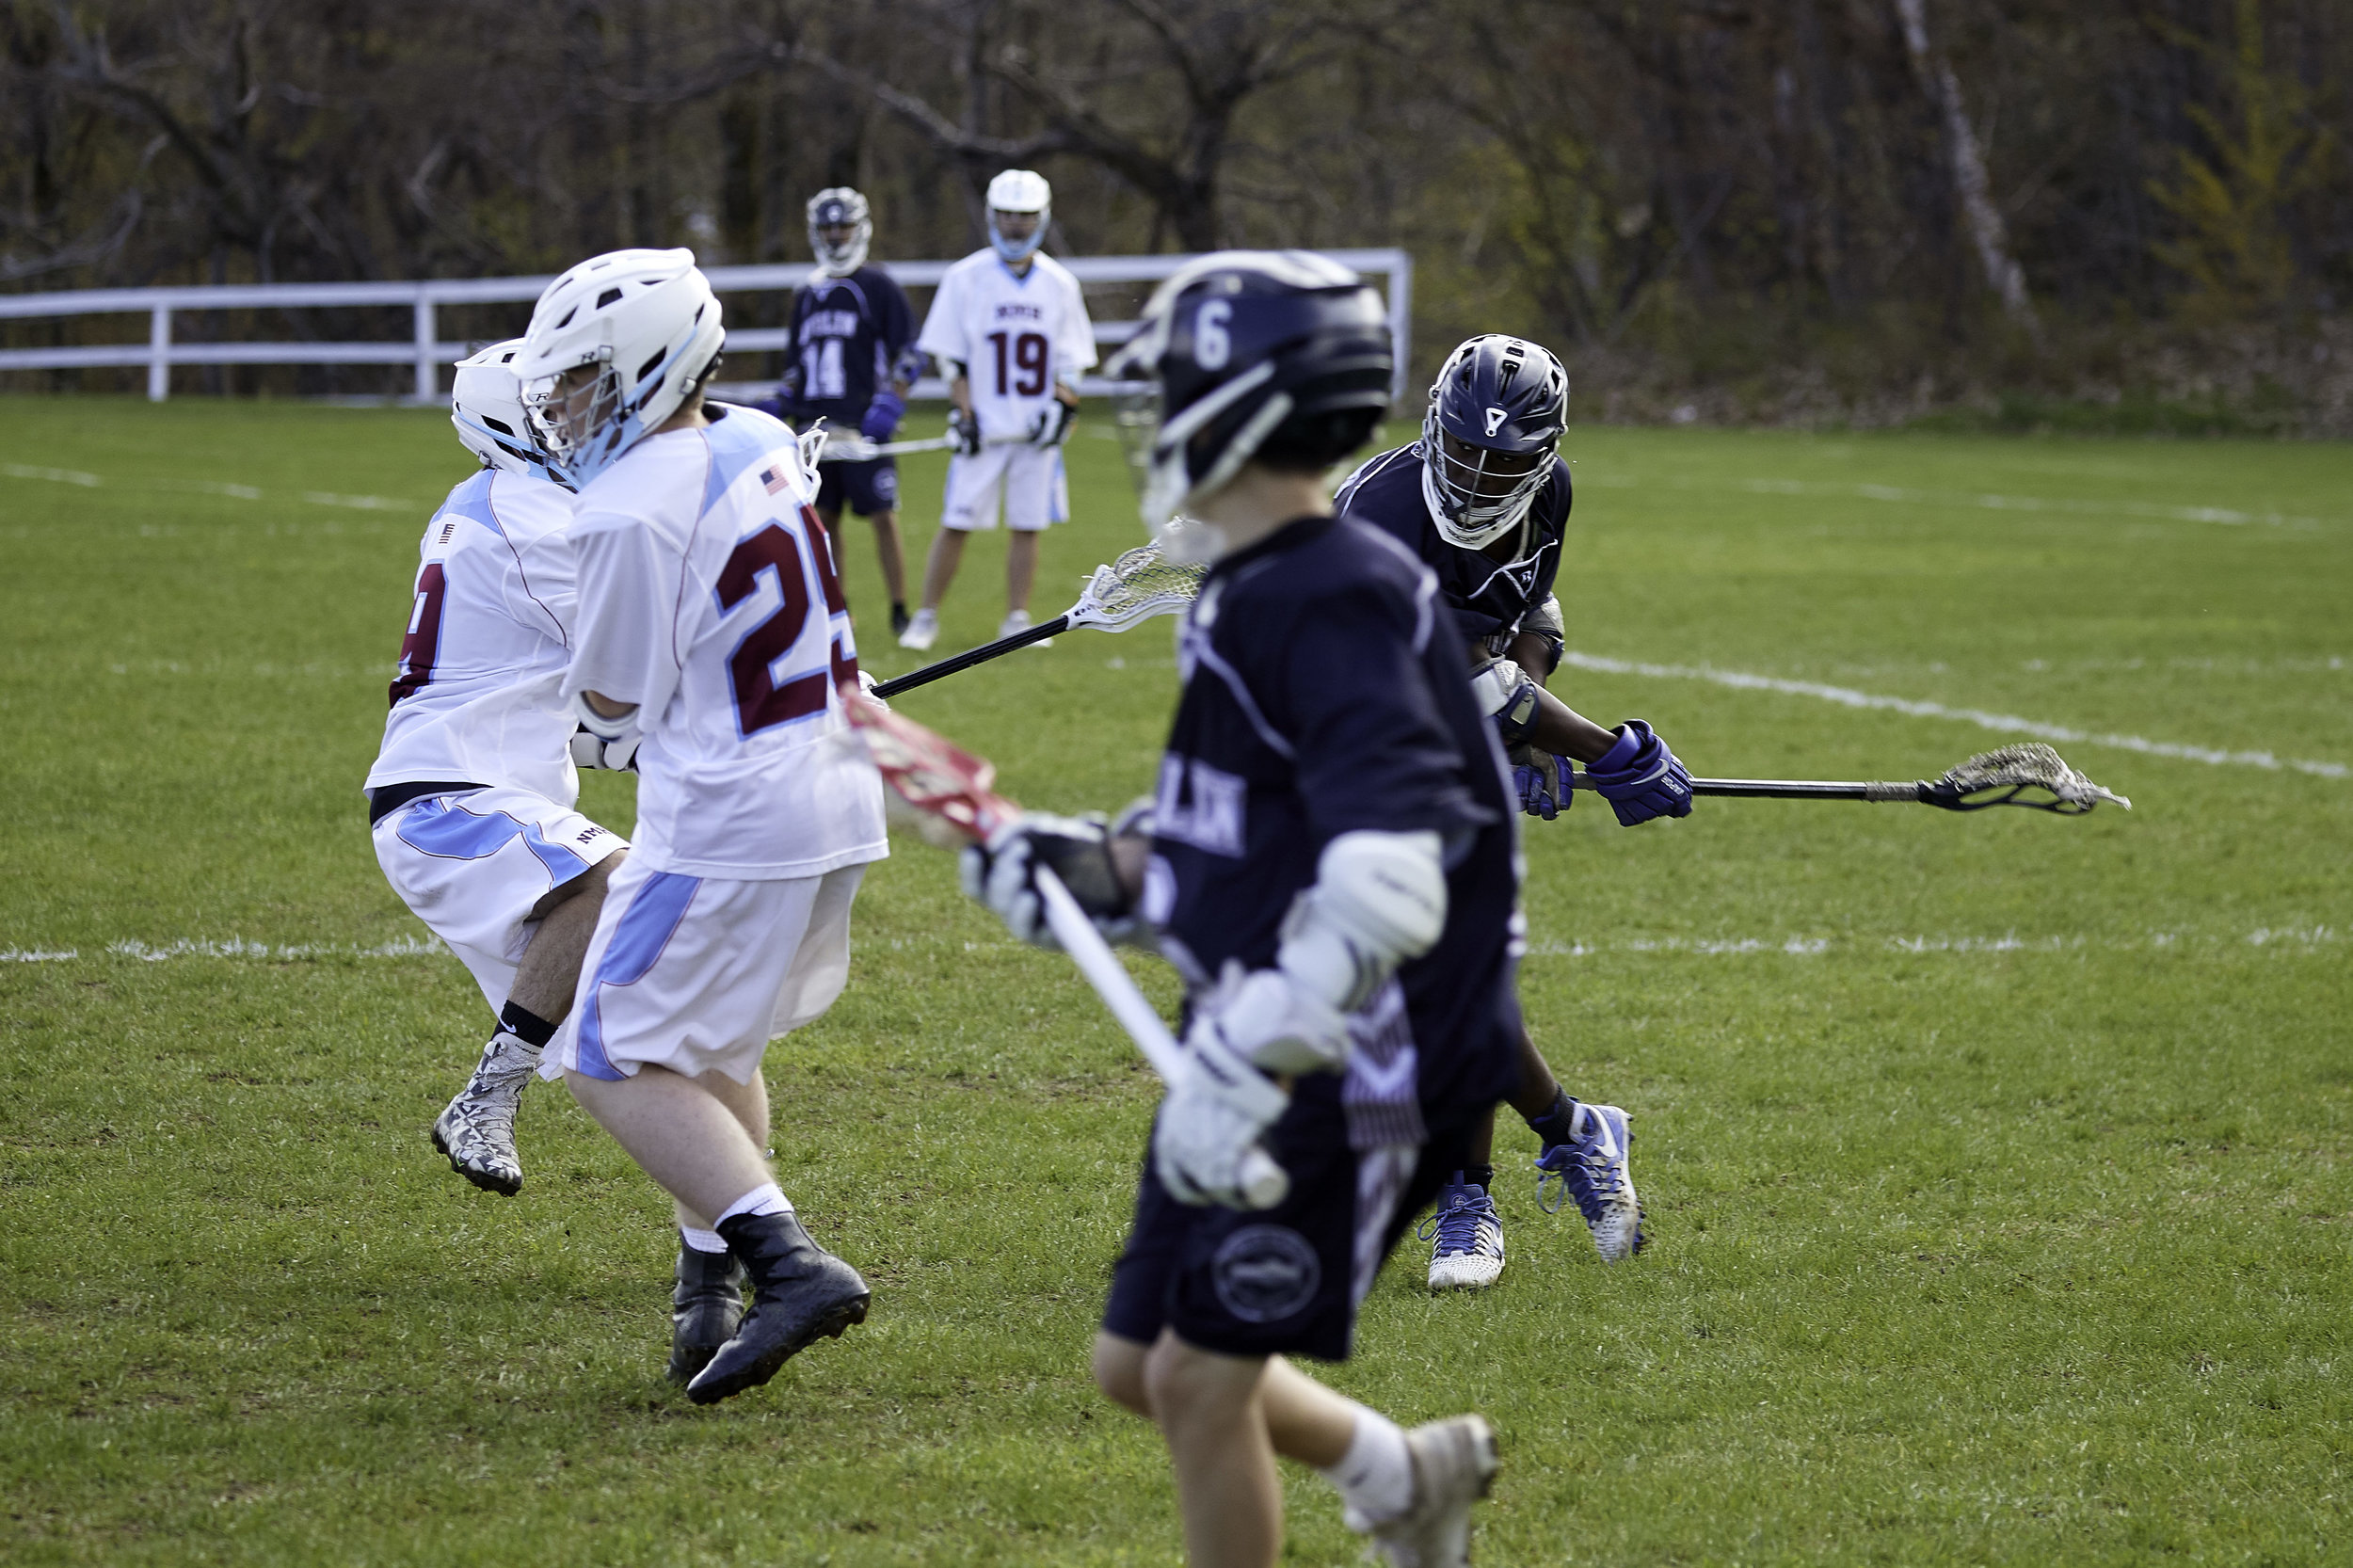 Boys Lax vs Northfield Mount Hermon JV - May 15 2019 - 0008.jpg